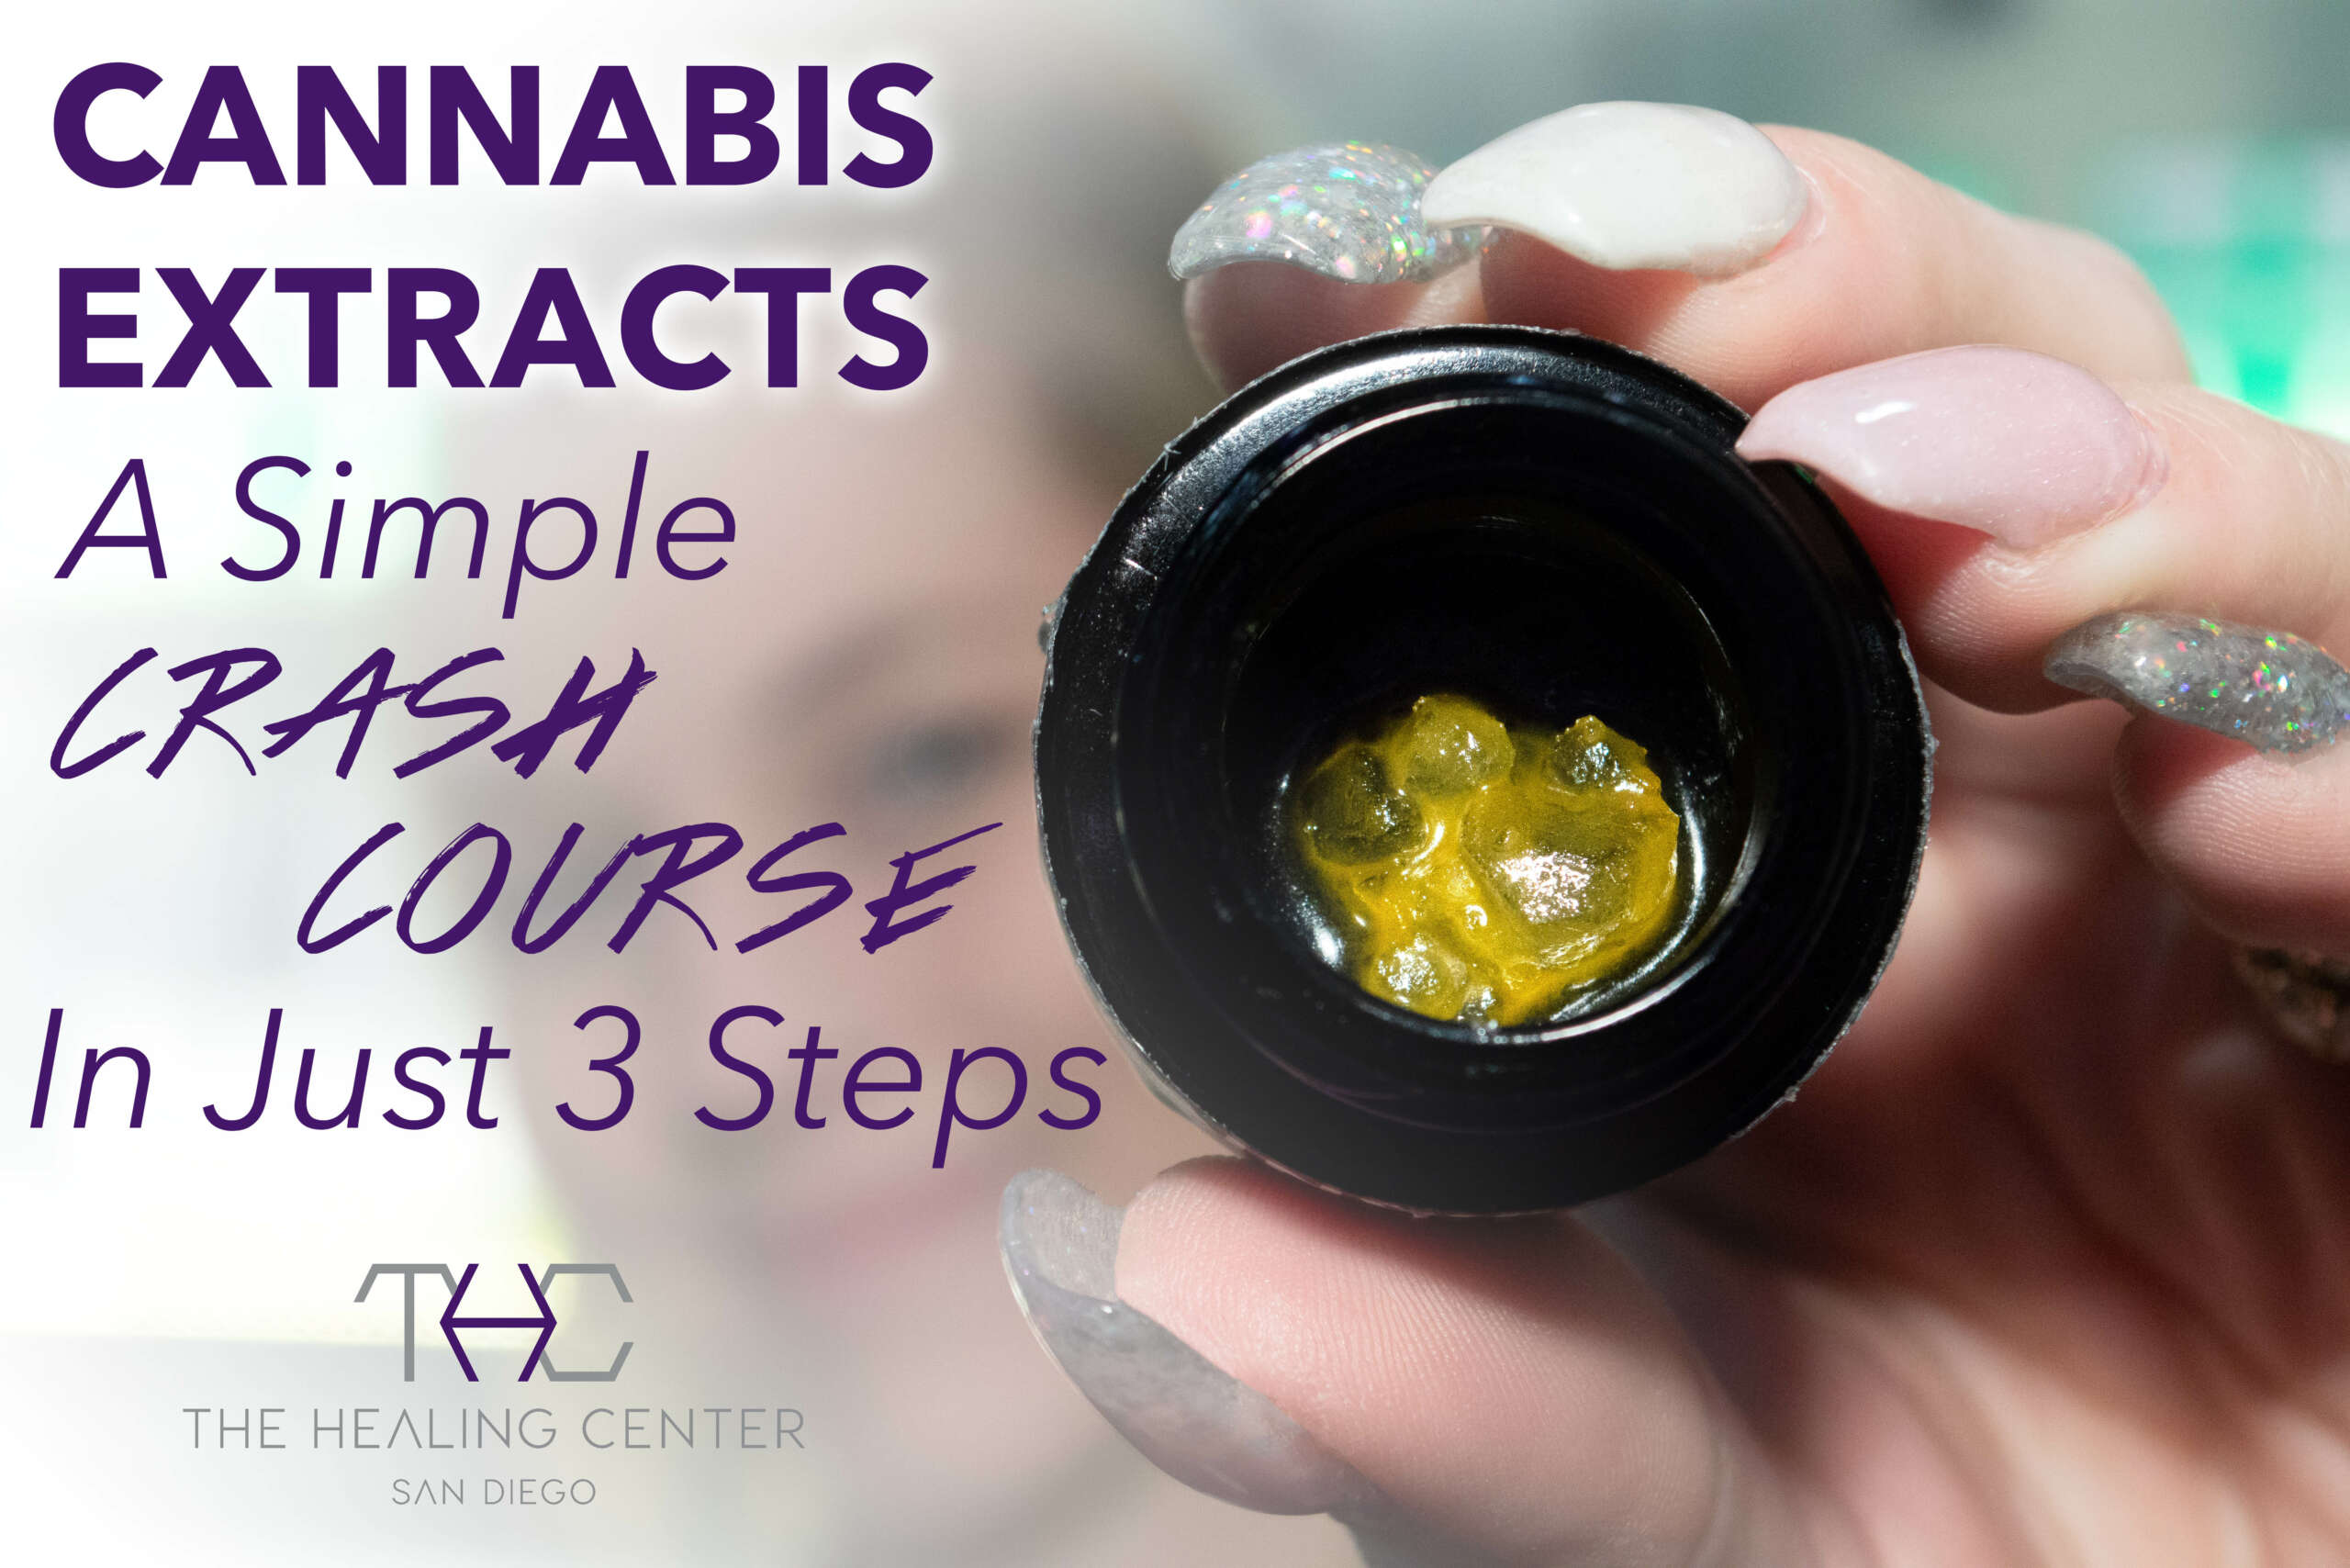 Cannabis Extracts: A Simple Crash Course in 3 Steps